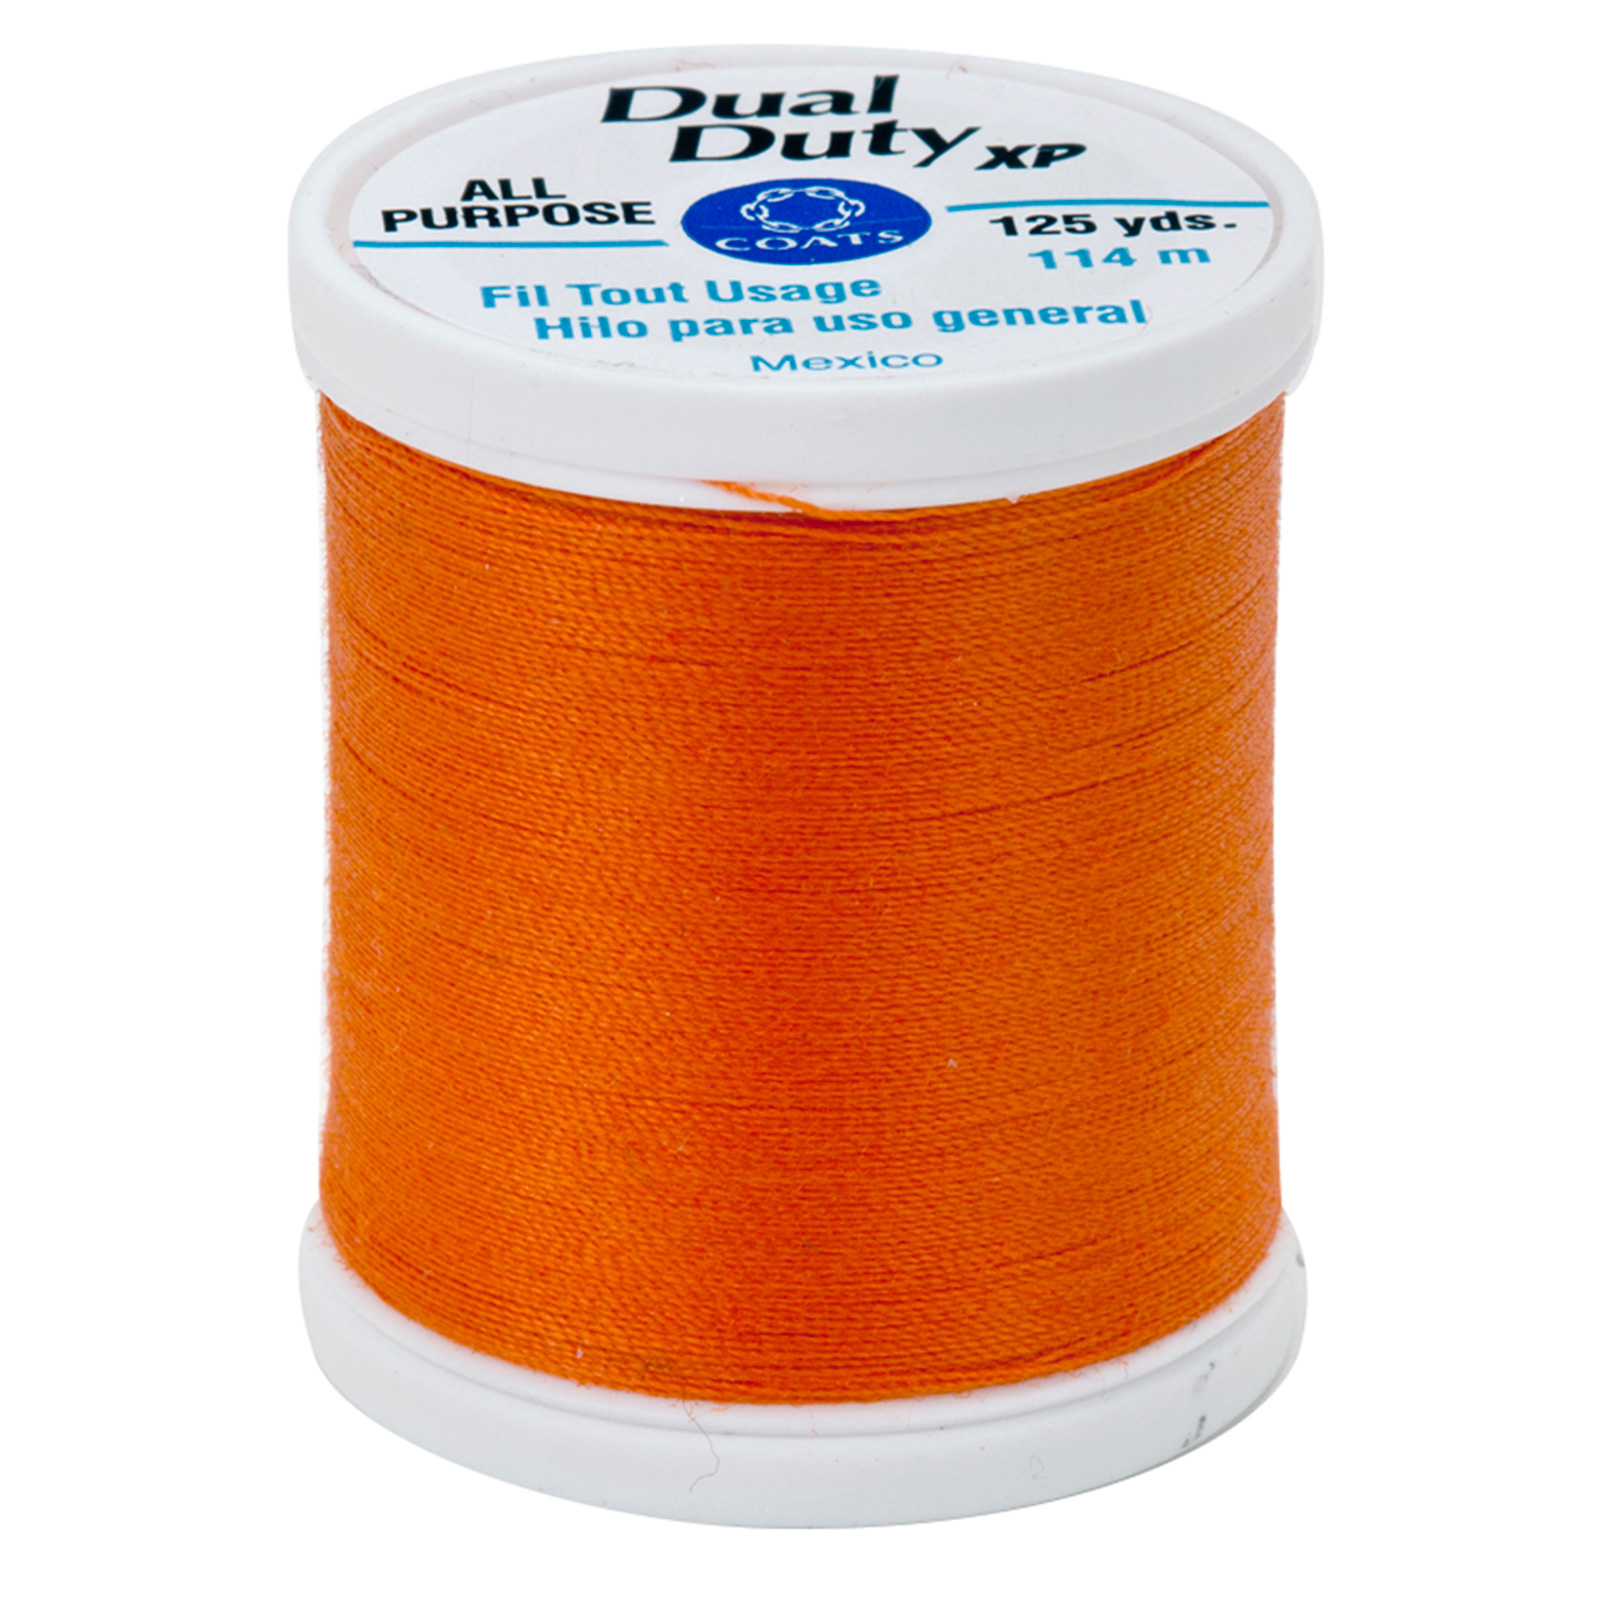 Coats & Clark Dual Duty XP 125yd Kumquat